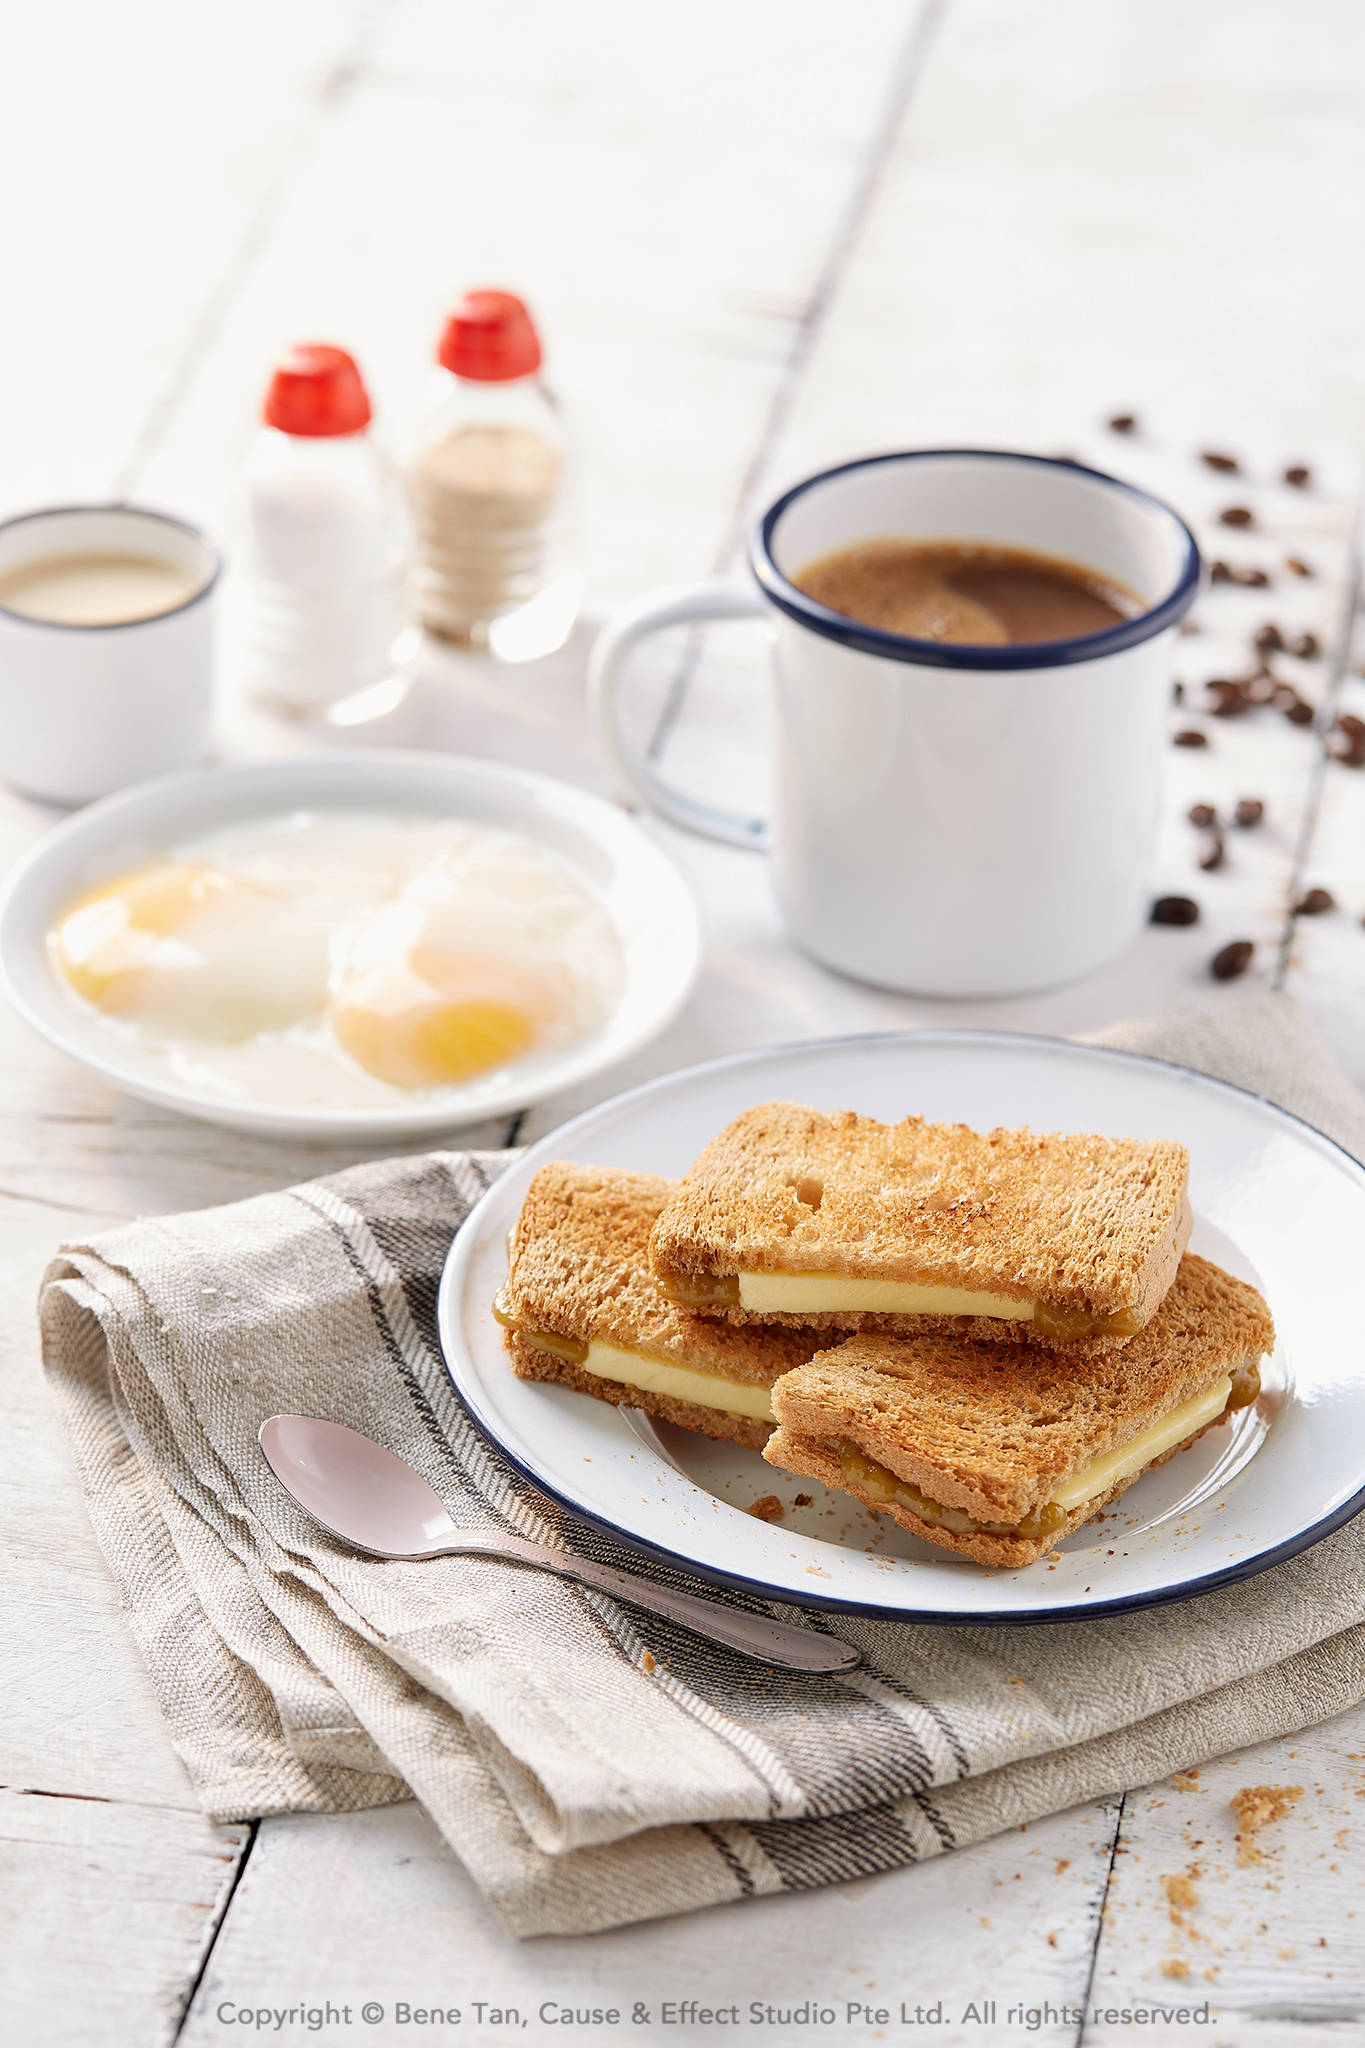 Coffee, Kaya Butter Toast & Hard Boiled Eggs